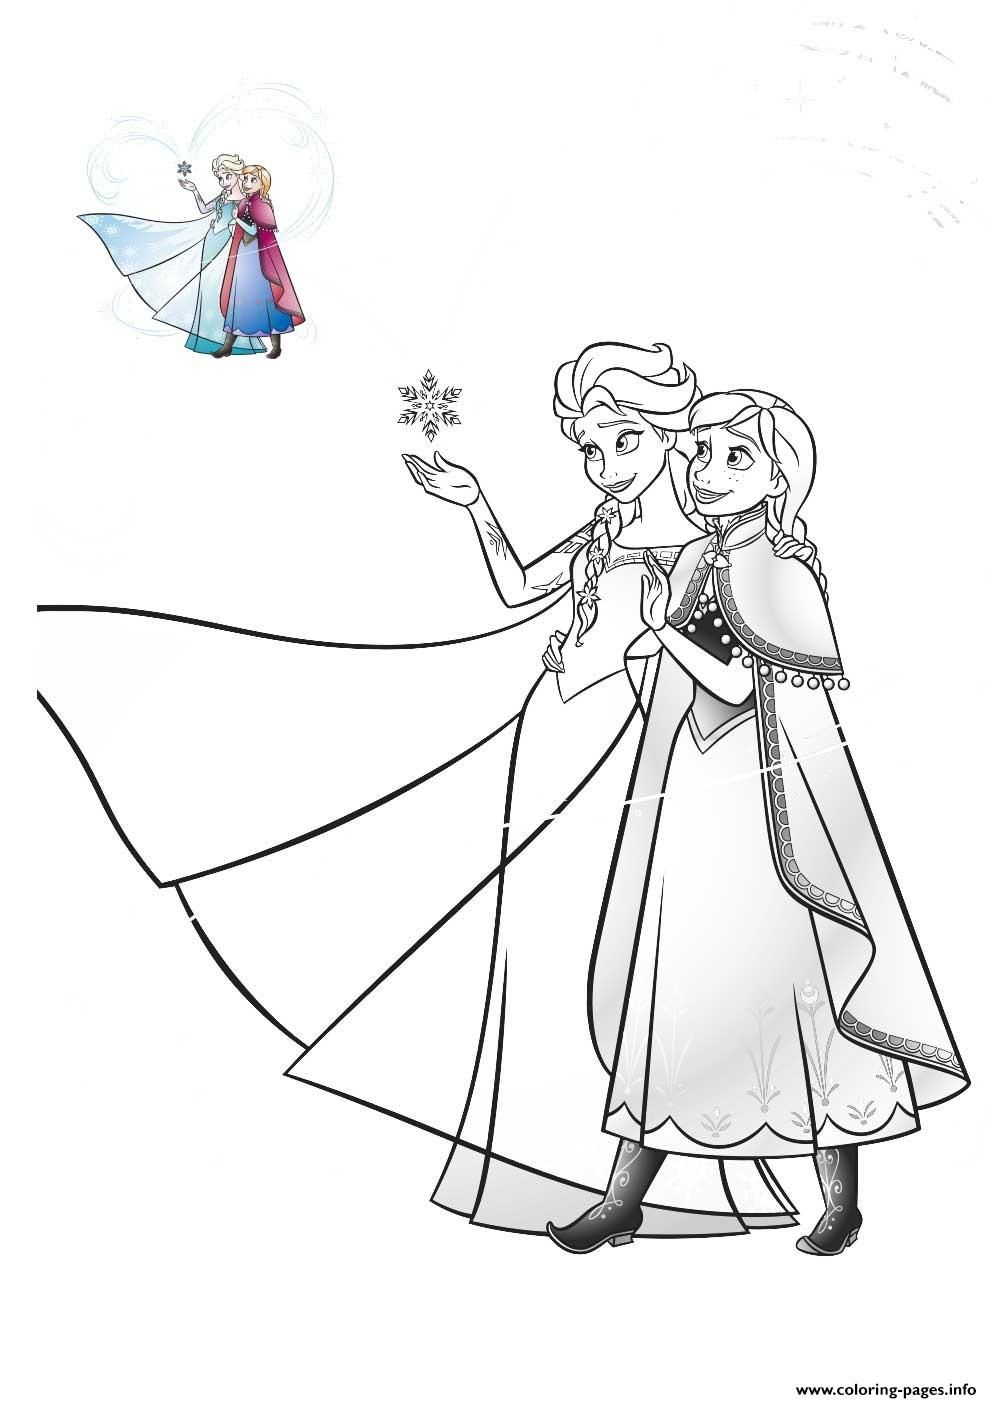 Pin By Joao Dutra On Dla Dzieci Elsa Coloring Pages Frozen Coloring Disney Princess Coloring Pages